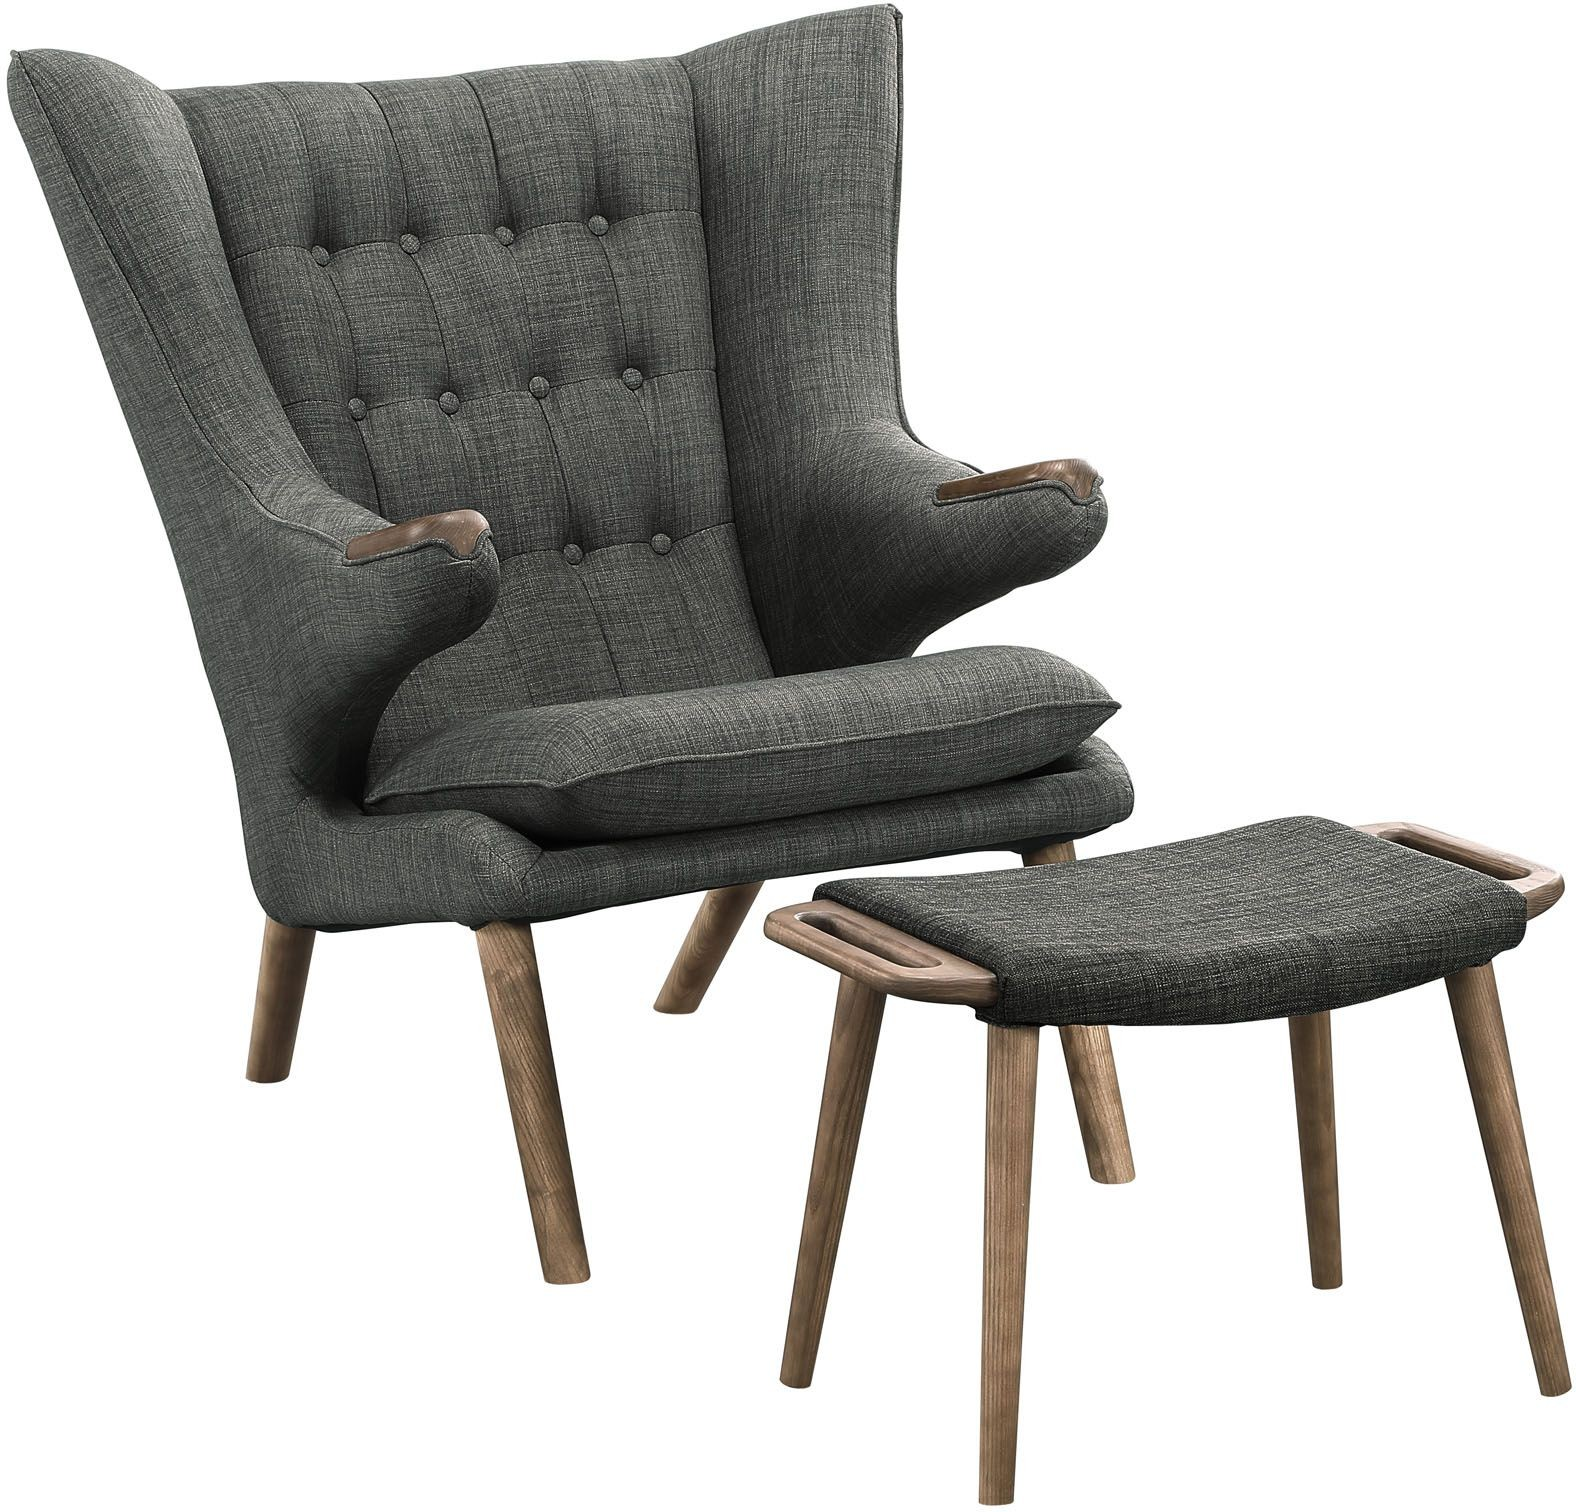 Grey Lounge Chair Bear Walnut Gray Lounge Chair With Ottoman From Renegade